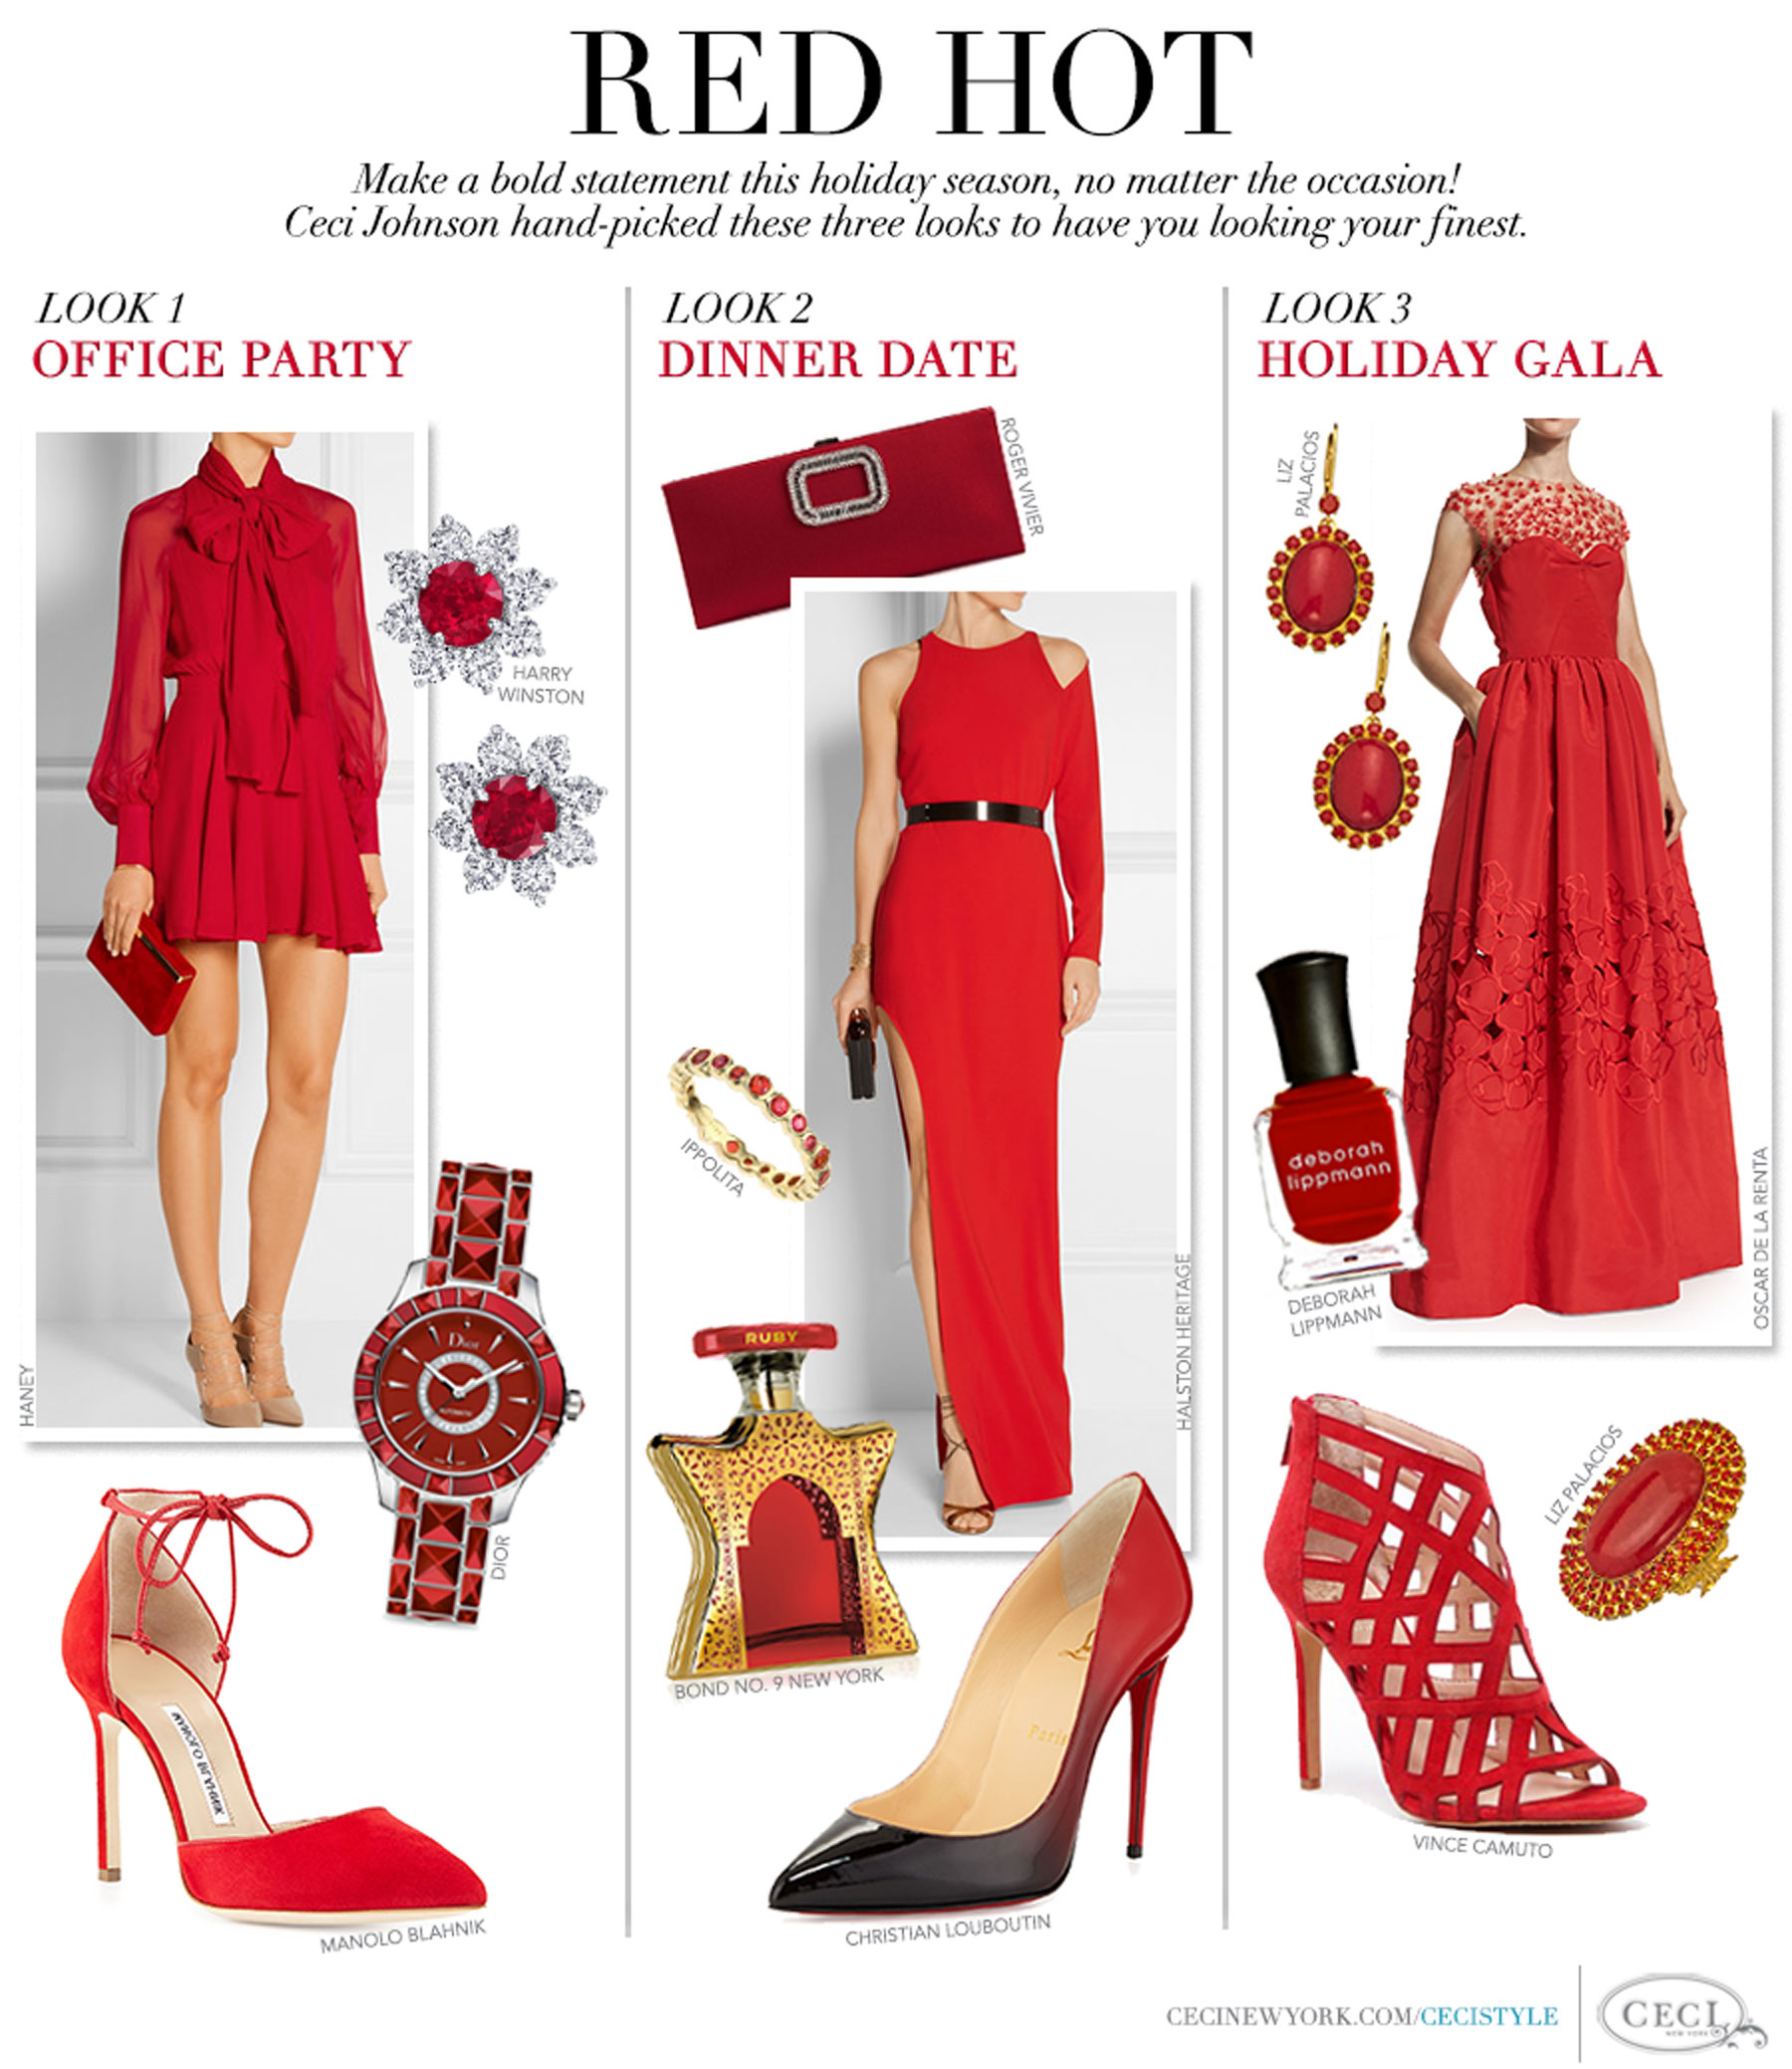 Red Hot - Make a bold statement this holiday season, no matter the occasion! Ceci Johnson hand-picked these three looks to have you looking your finest